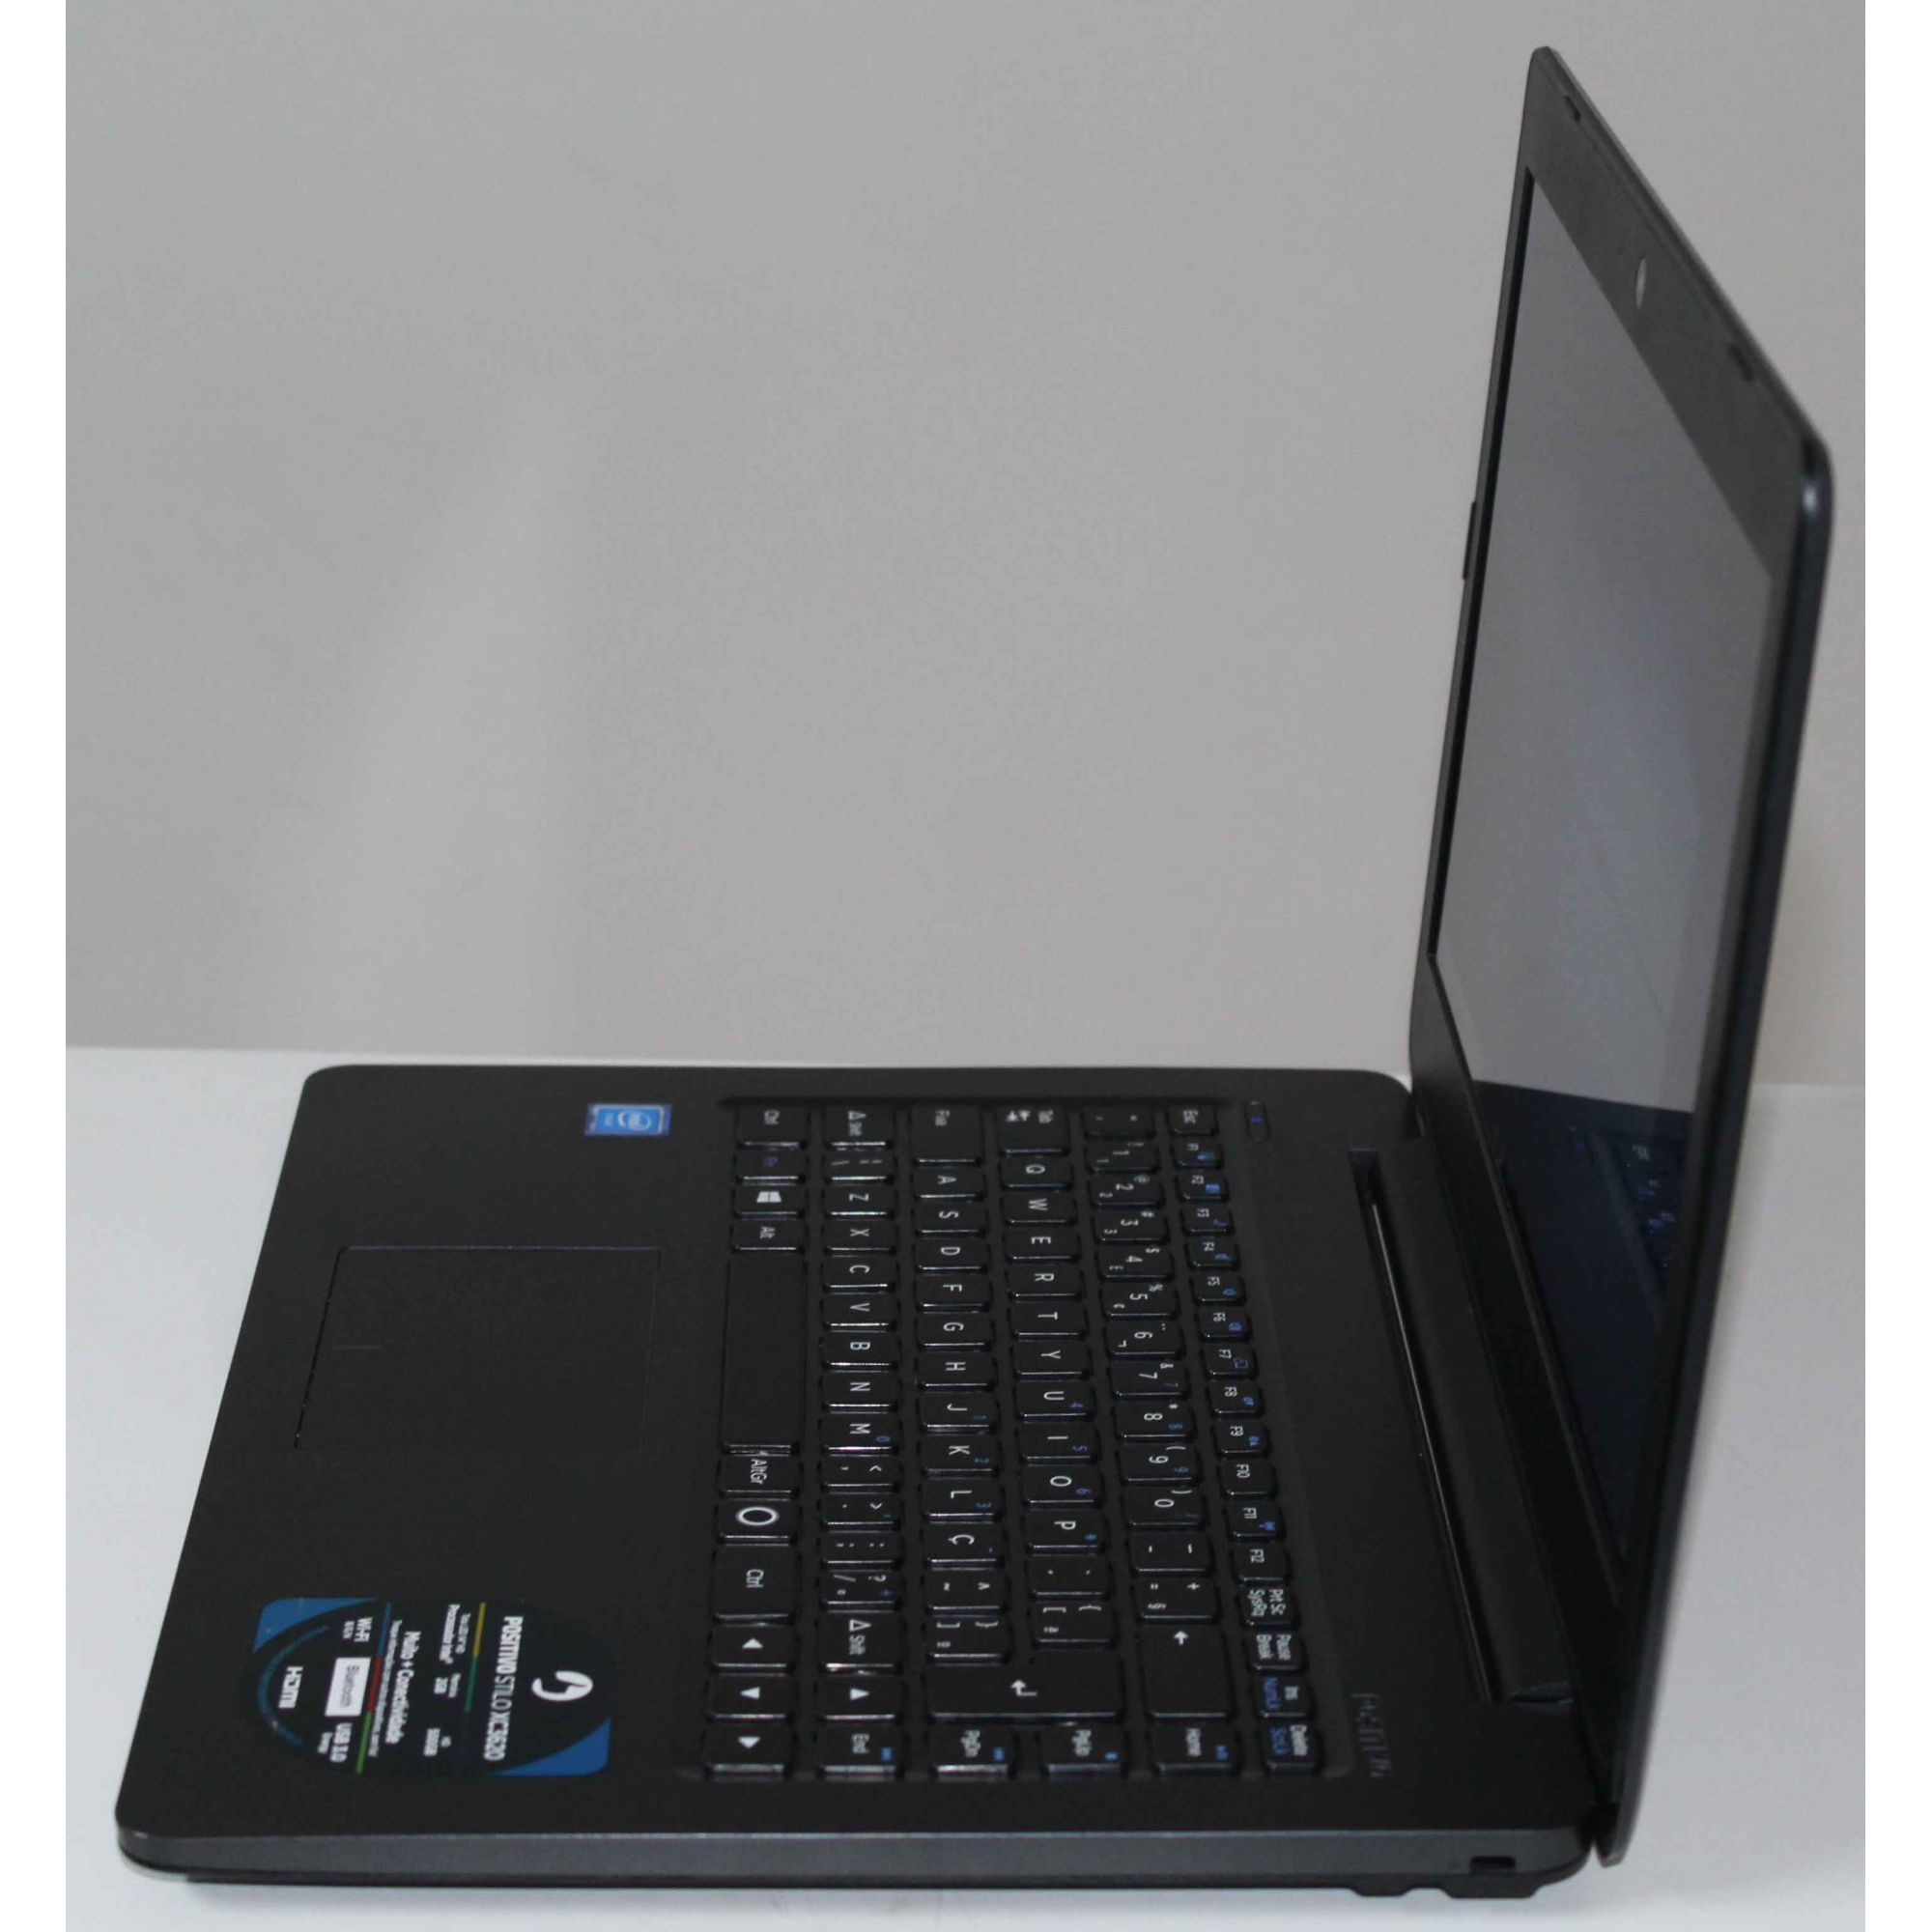 Notebook Positivo Stilo XC3620 14'' Intel Cel 1.04GHz 2GB HD-500GB